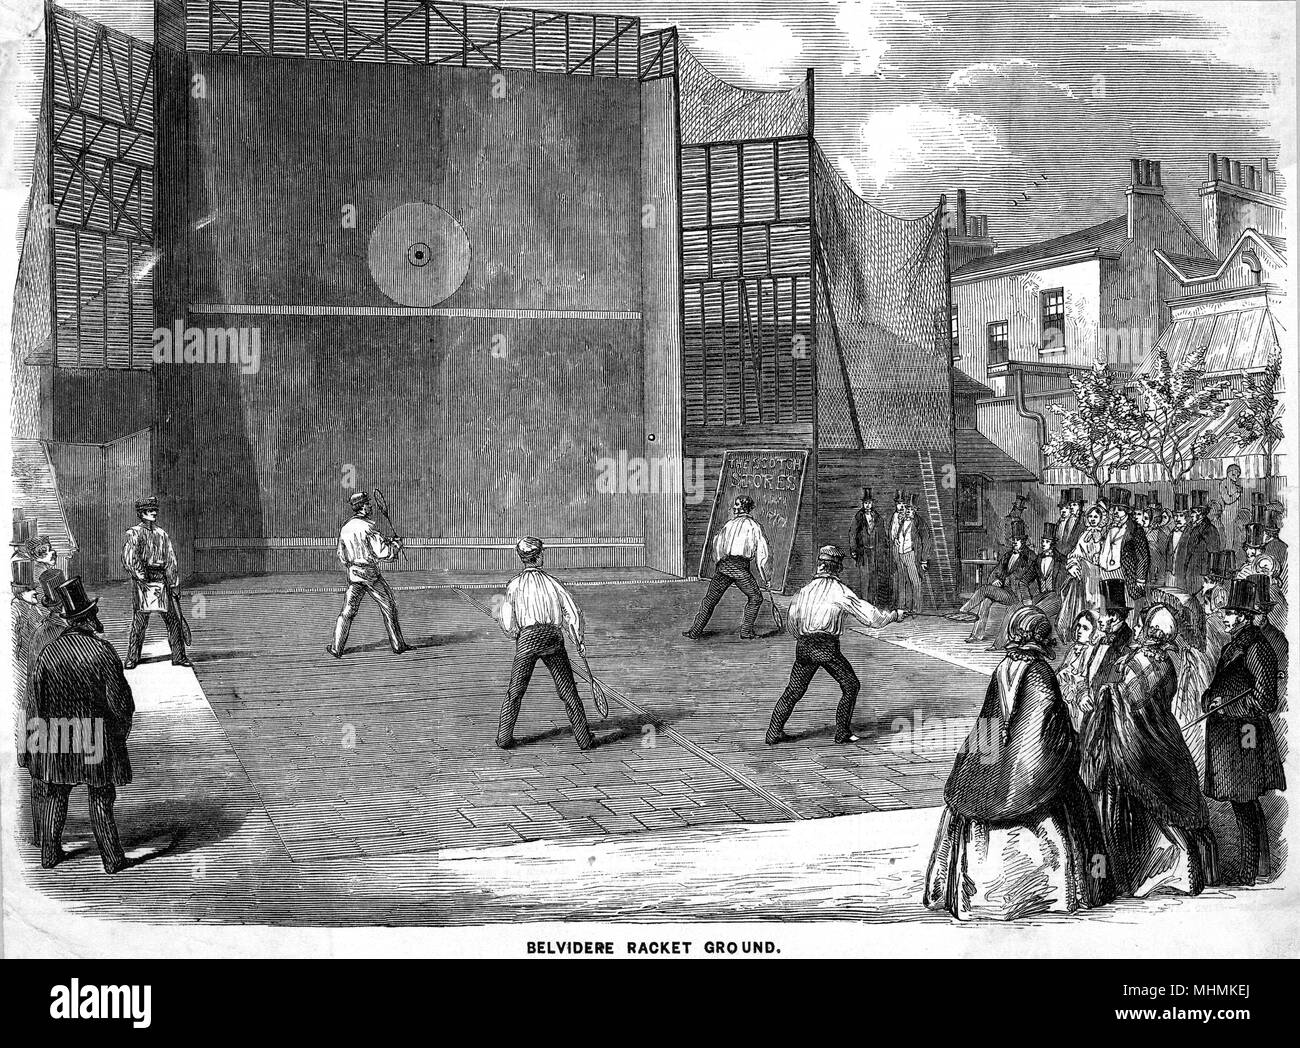 A pairs match is watched by a high-brow crowd at Belvedere.       Date: 1858 - Stock Image